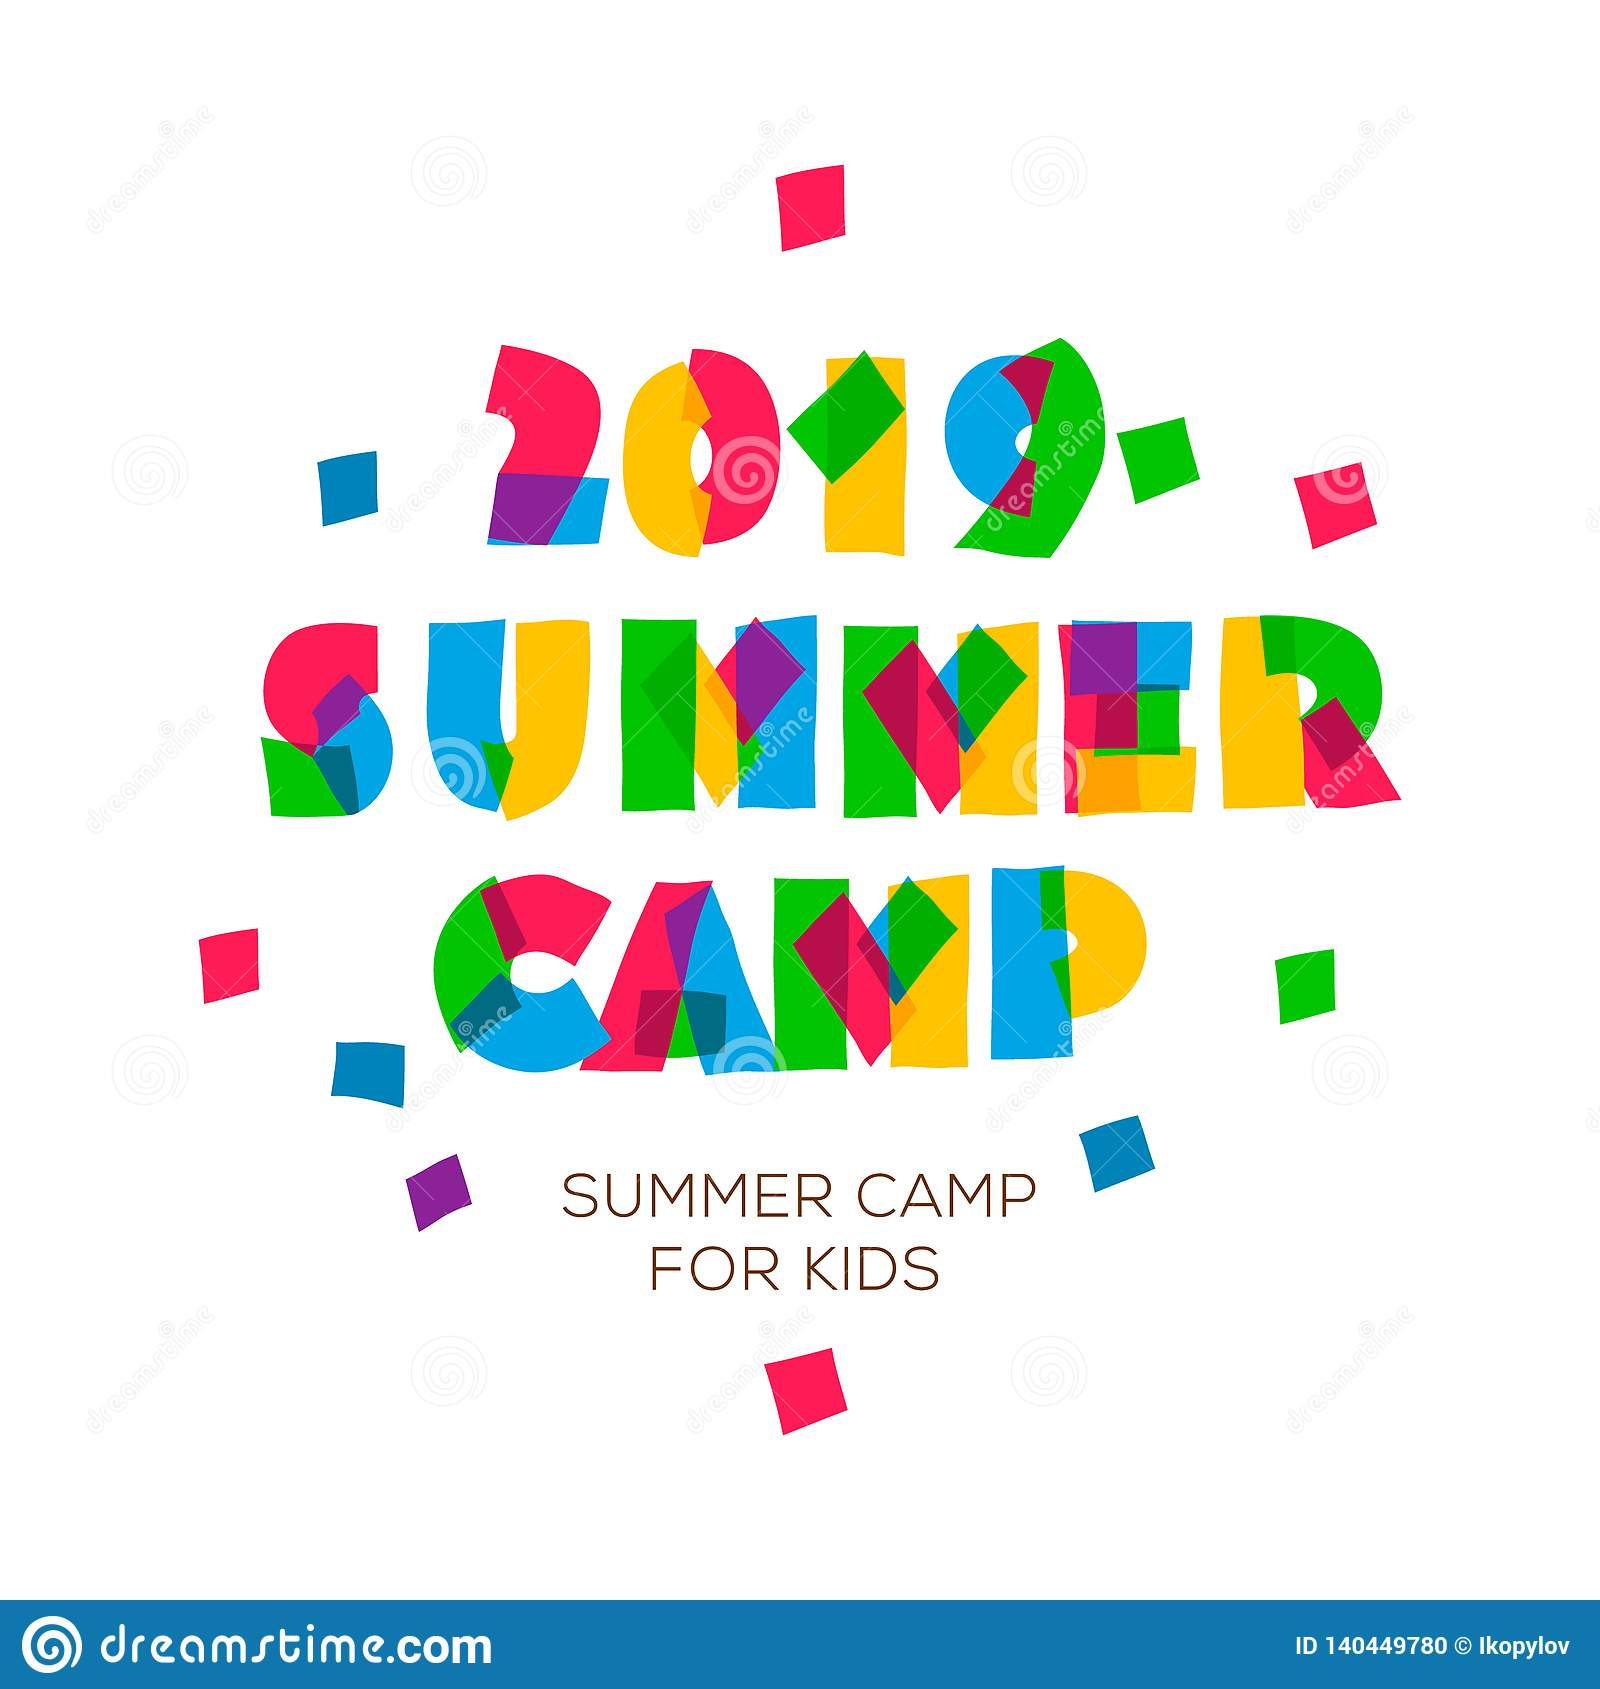 Themed Summer Camp 2019 Poster In Flat Style, Vector Illustration